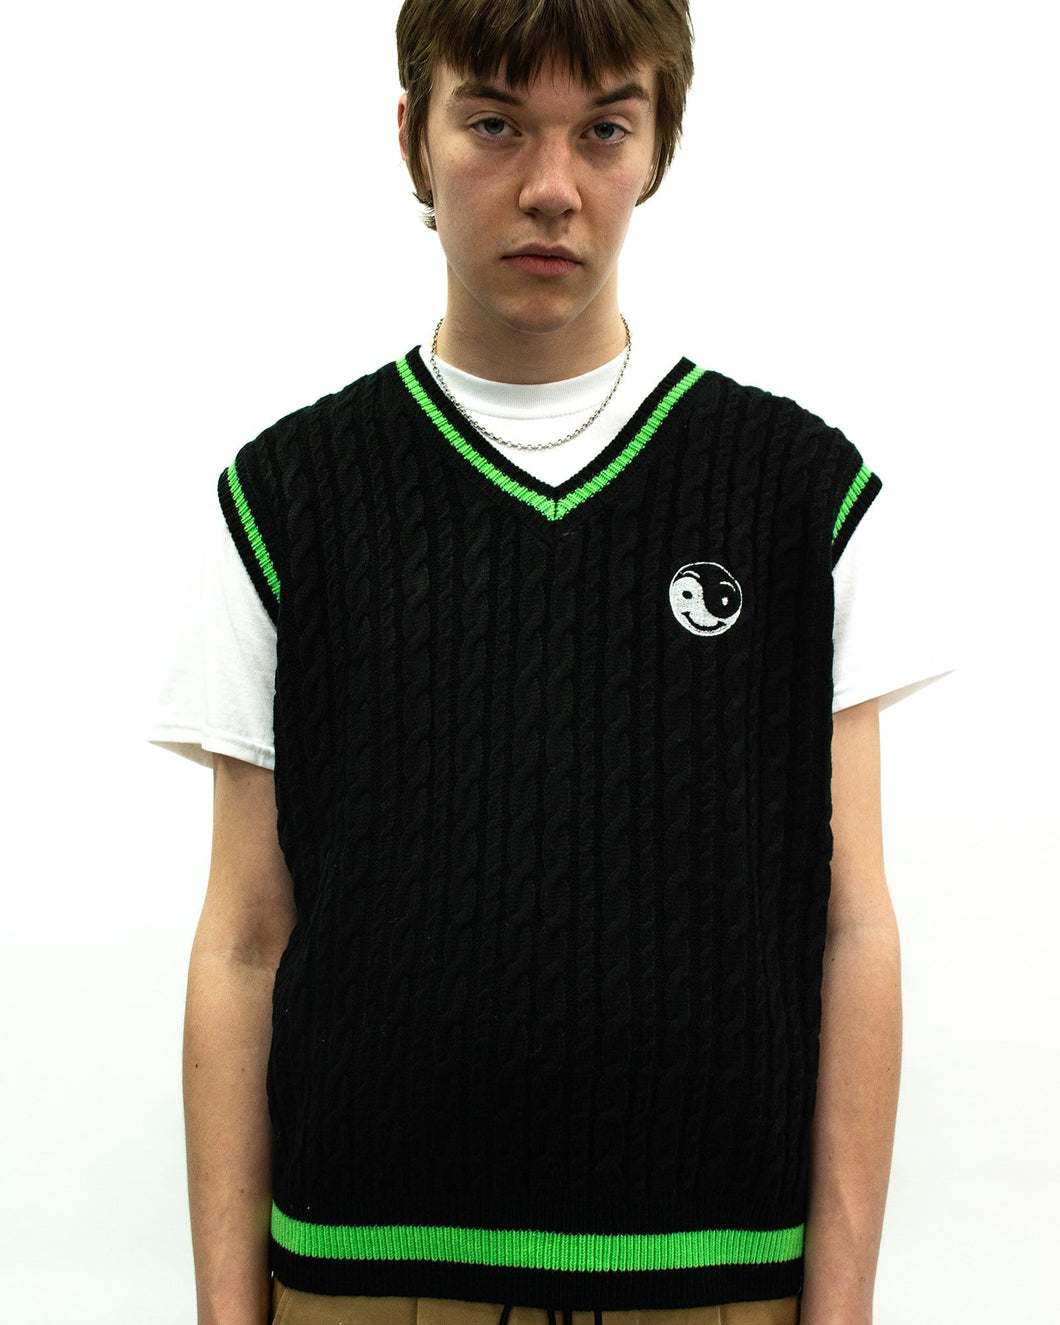 Knitted Vest With Ying Yang